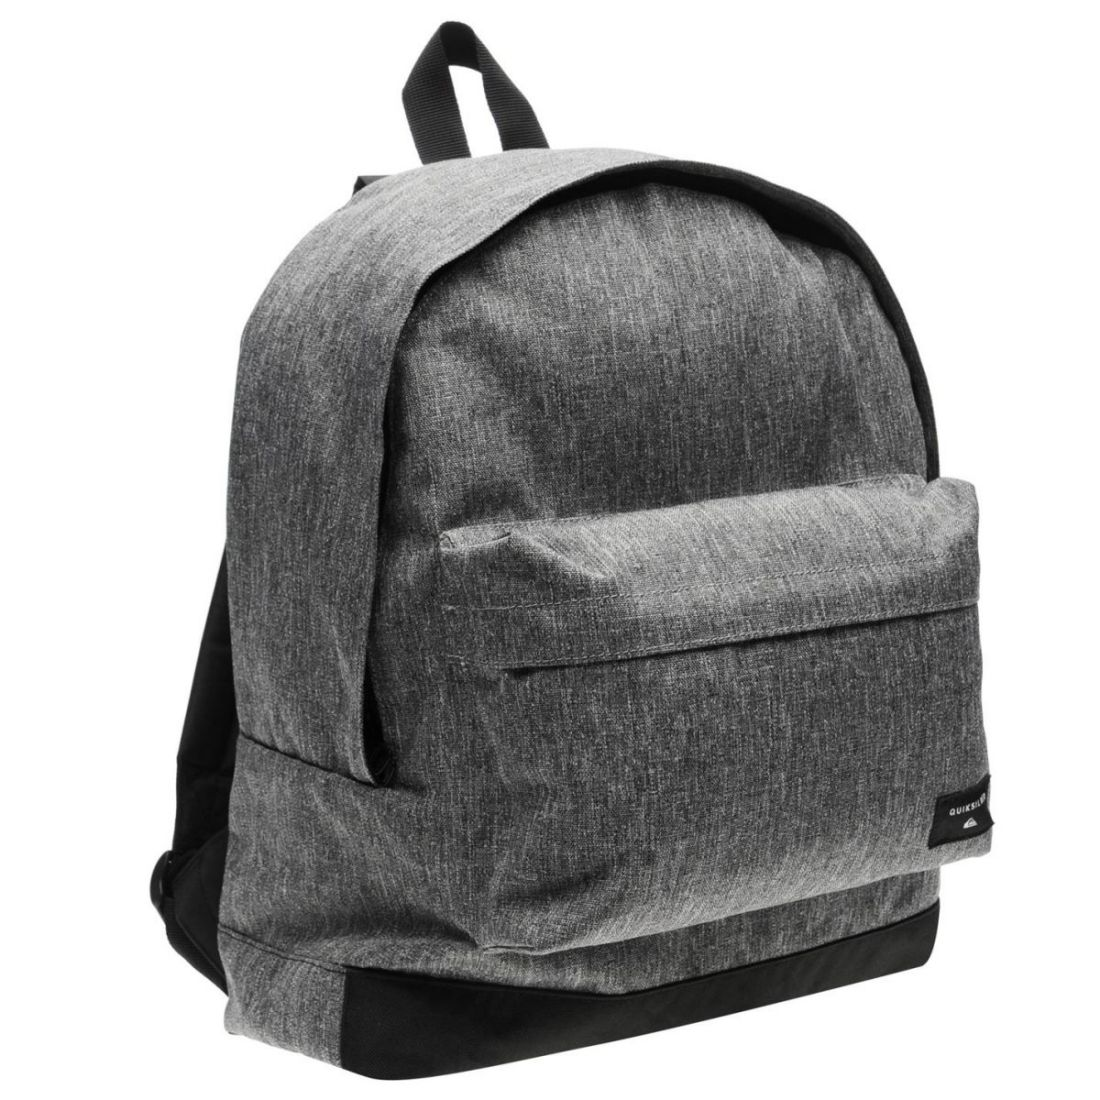 1d73287065 Image is loading Mens-Back-Pack-Quiksilver-CaveRock-Bpack-New